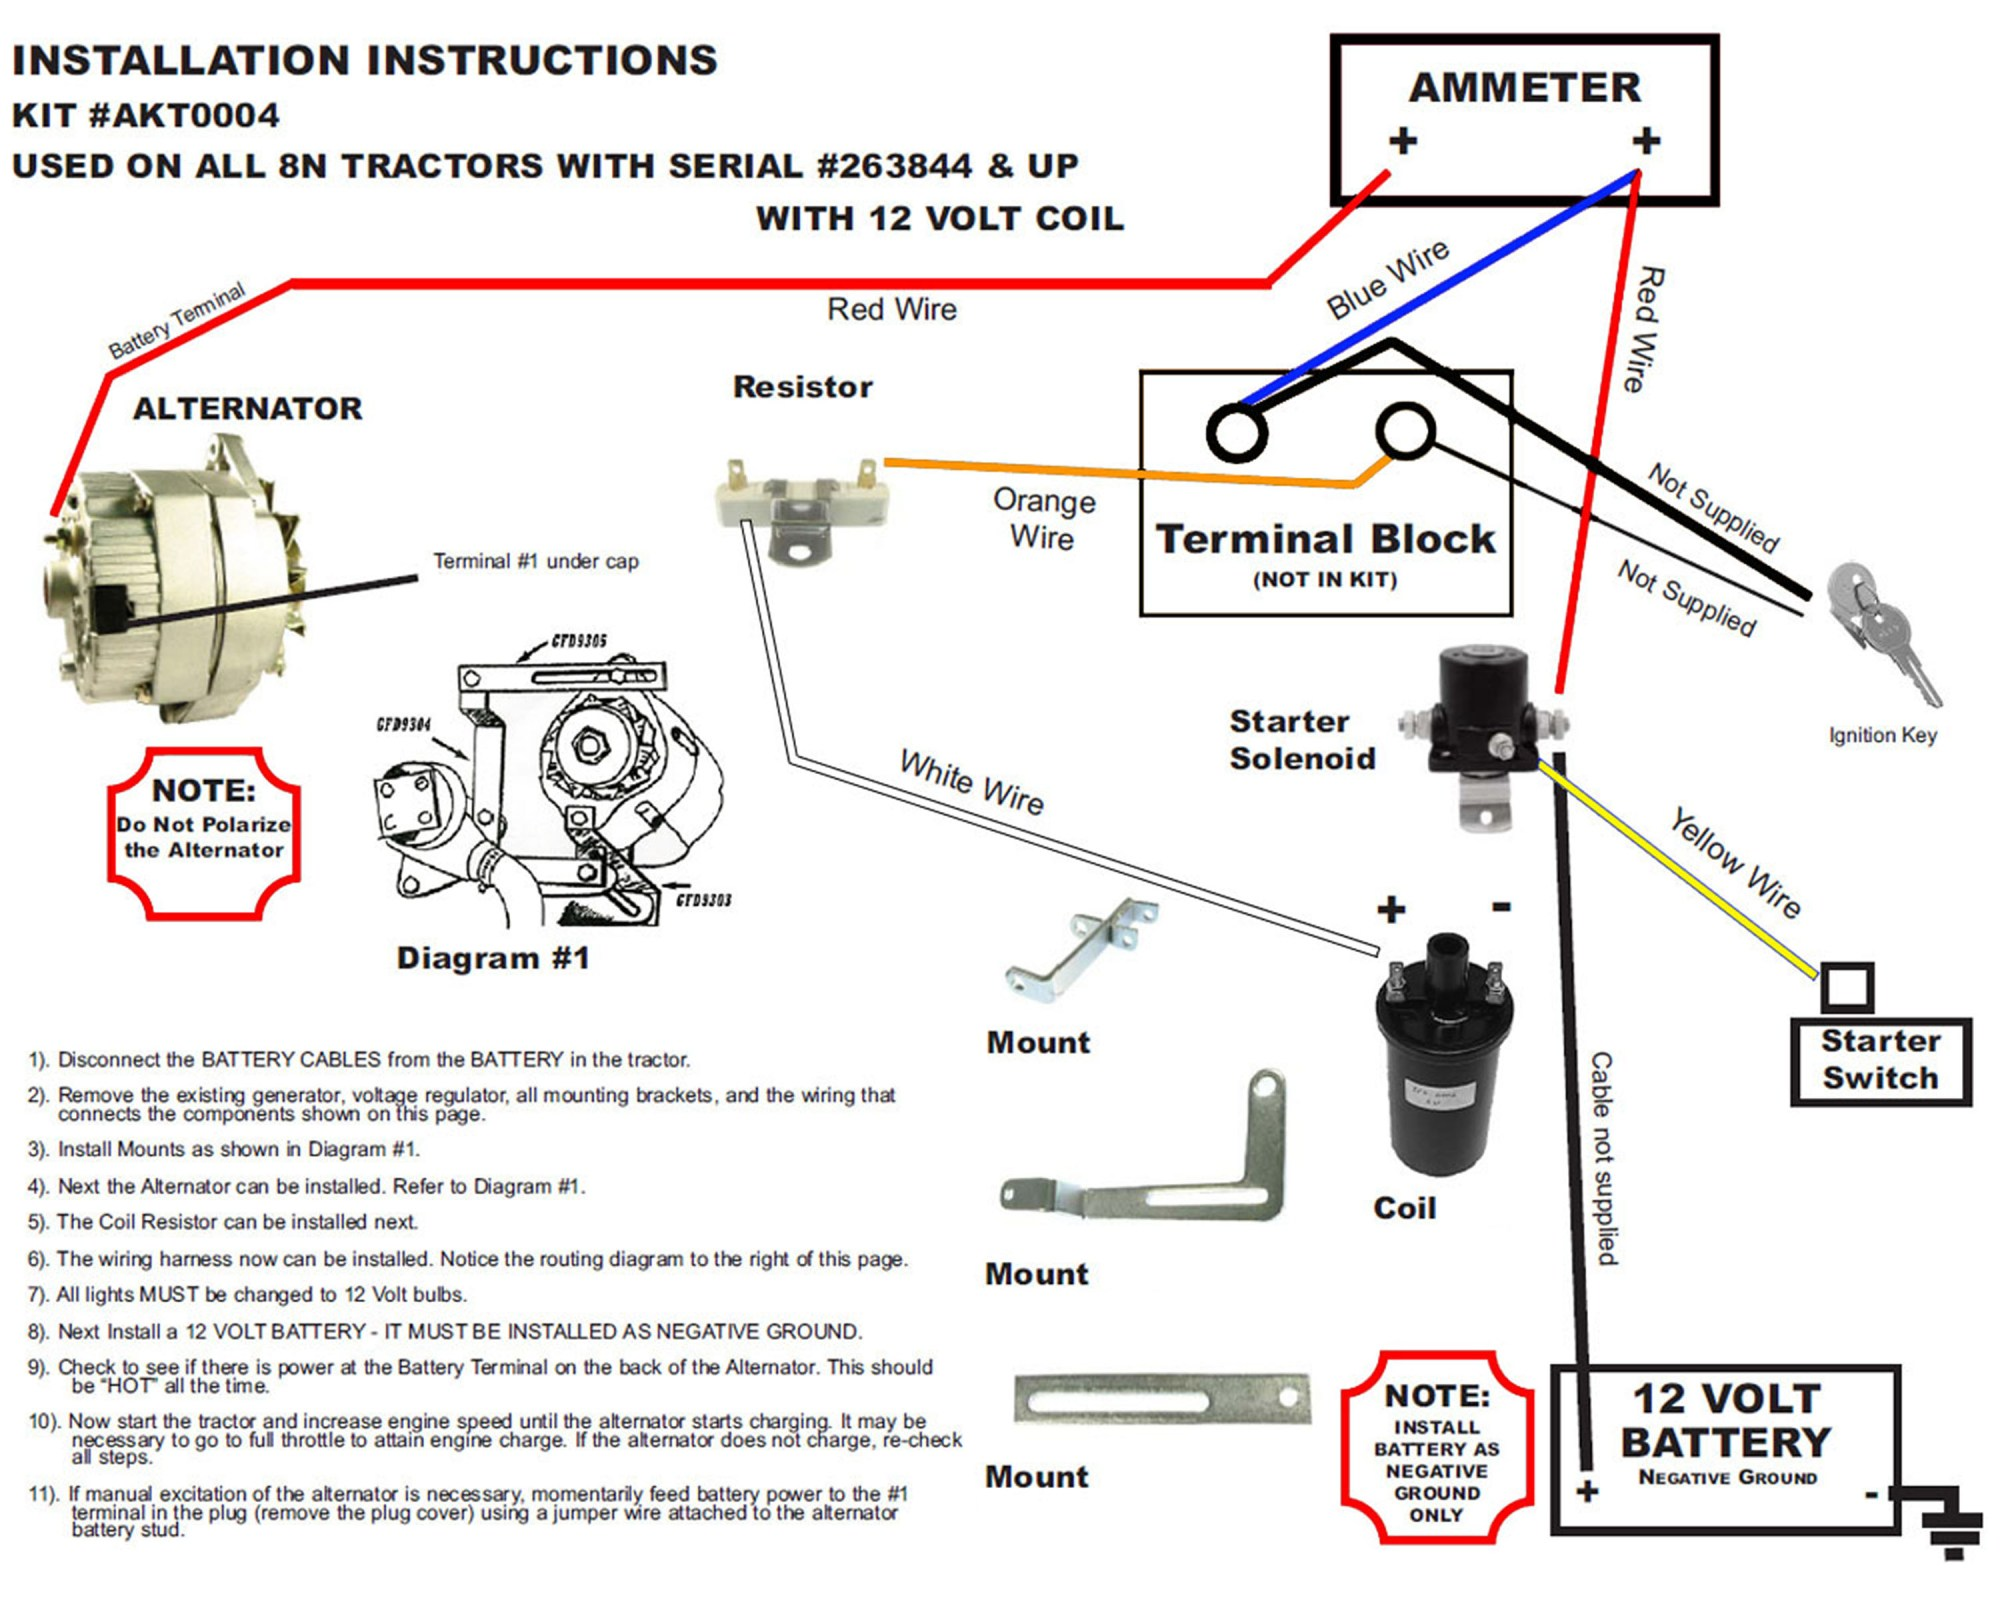 hight resolution of 12 volt wiring diagram ford 8n tractor 1 wire alternator wiring 12 volt alternator wiring diagram